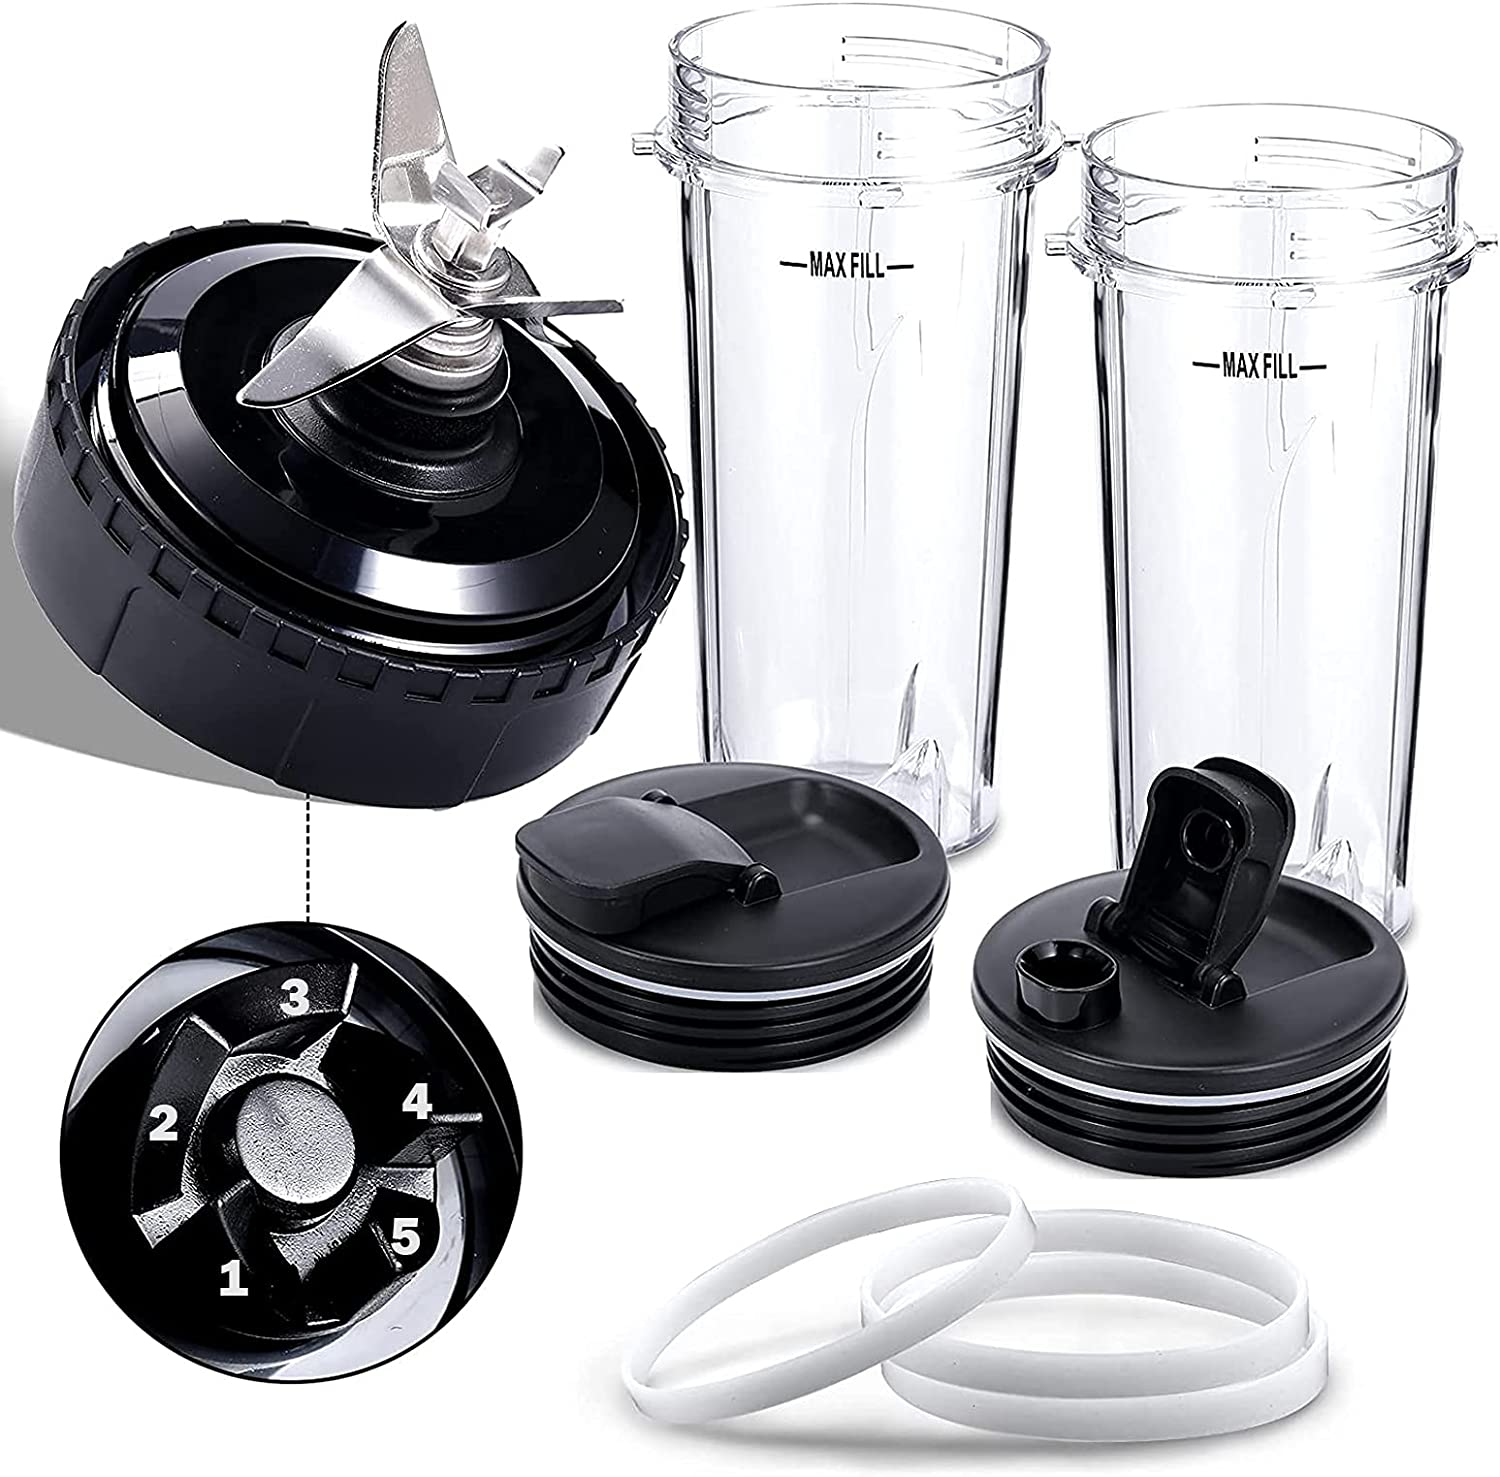 8 Pieces Credence Blender Replacement Parts Compatible 5 Popular popular Ninja with Nutri